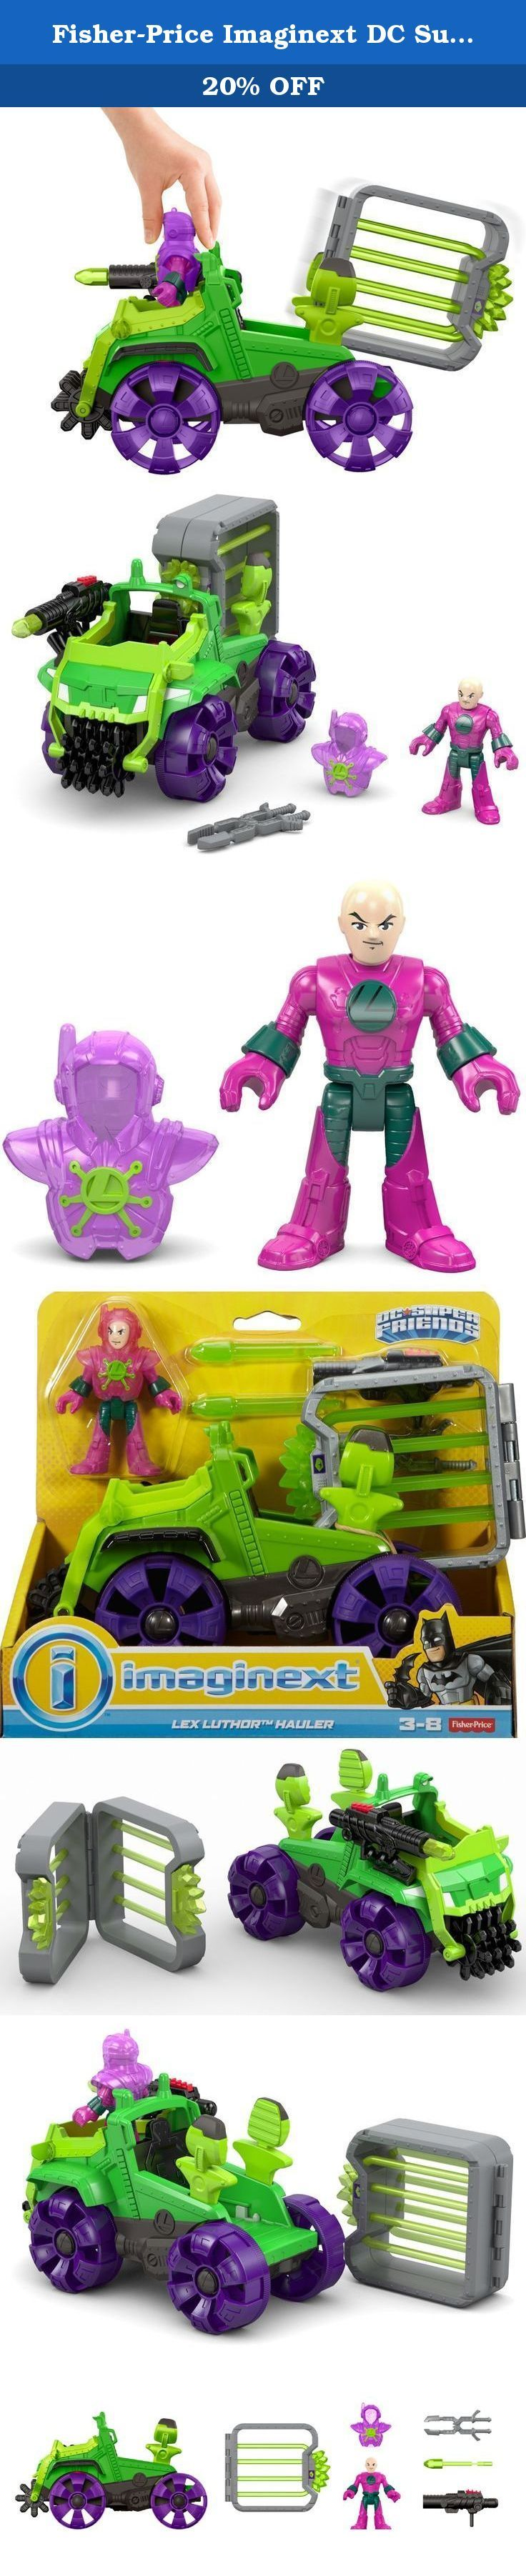 Fisher-Price Imaginext DC Super Friends Lex Corp. Hauler. The evil Lex Luthor knows the one weakness of Superman. So he built the Lex Hauler with a Kryptonite blaster to sap Superman's strength and a Kryptonite cage to trap the Man of Steel! Once he's captured, kids can lock the cage in the toy truck to transport him to Lex Luthor's hideout - and then turn the Power Pad to eject the cage when he's arrived. (Superman figure sold separately.)Is this truly the end of Superman? Kids use their...